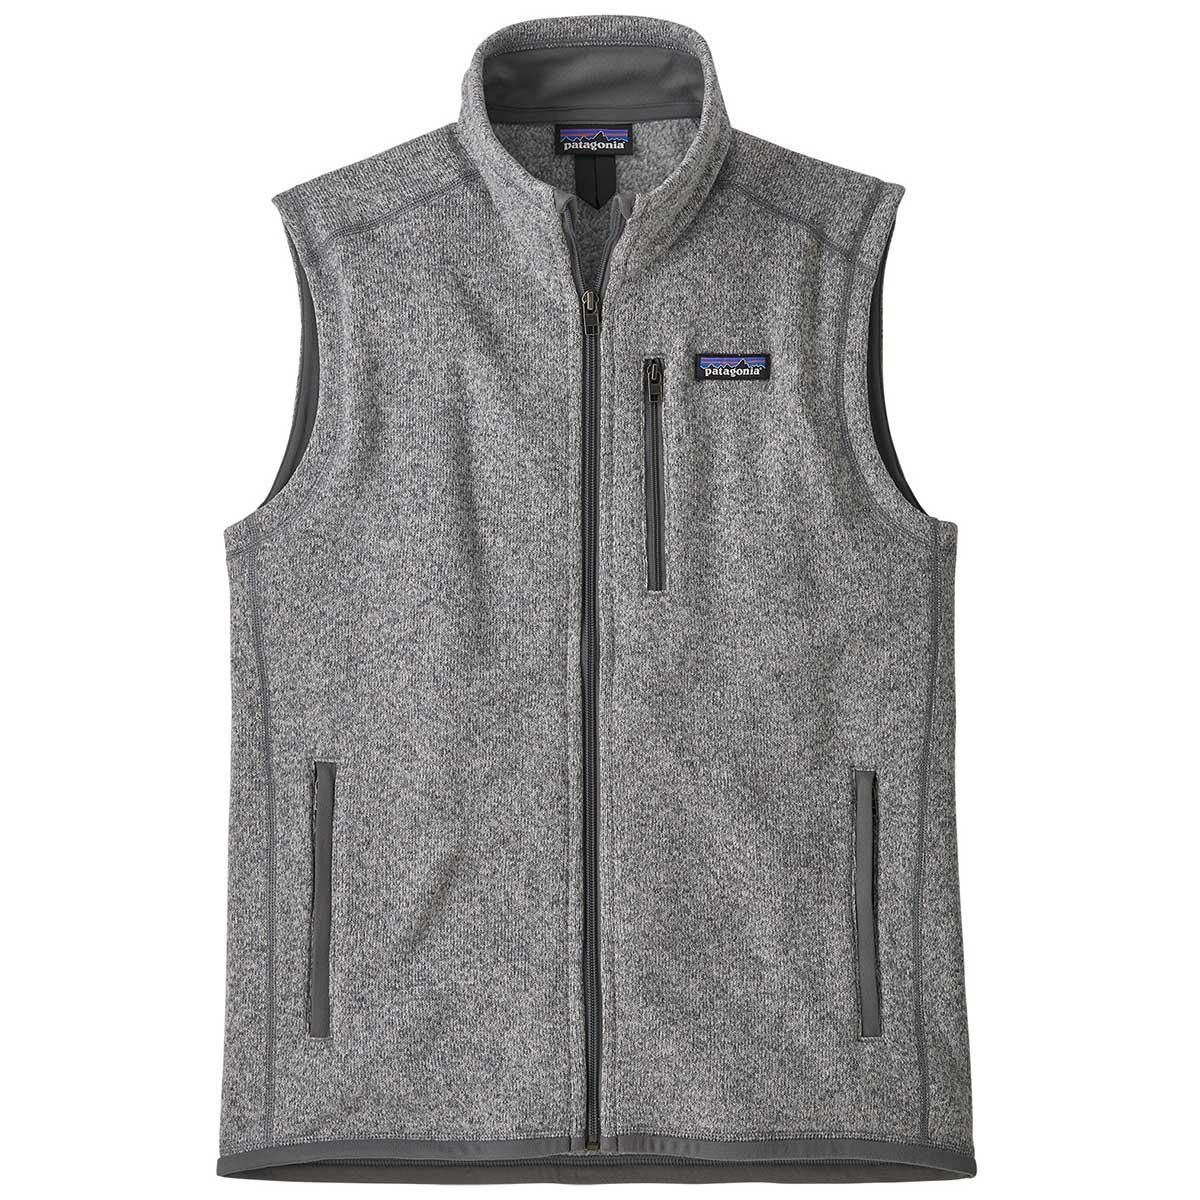 Patagonia men's Better Sweater Vest in Stonewash front view